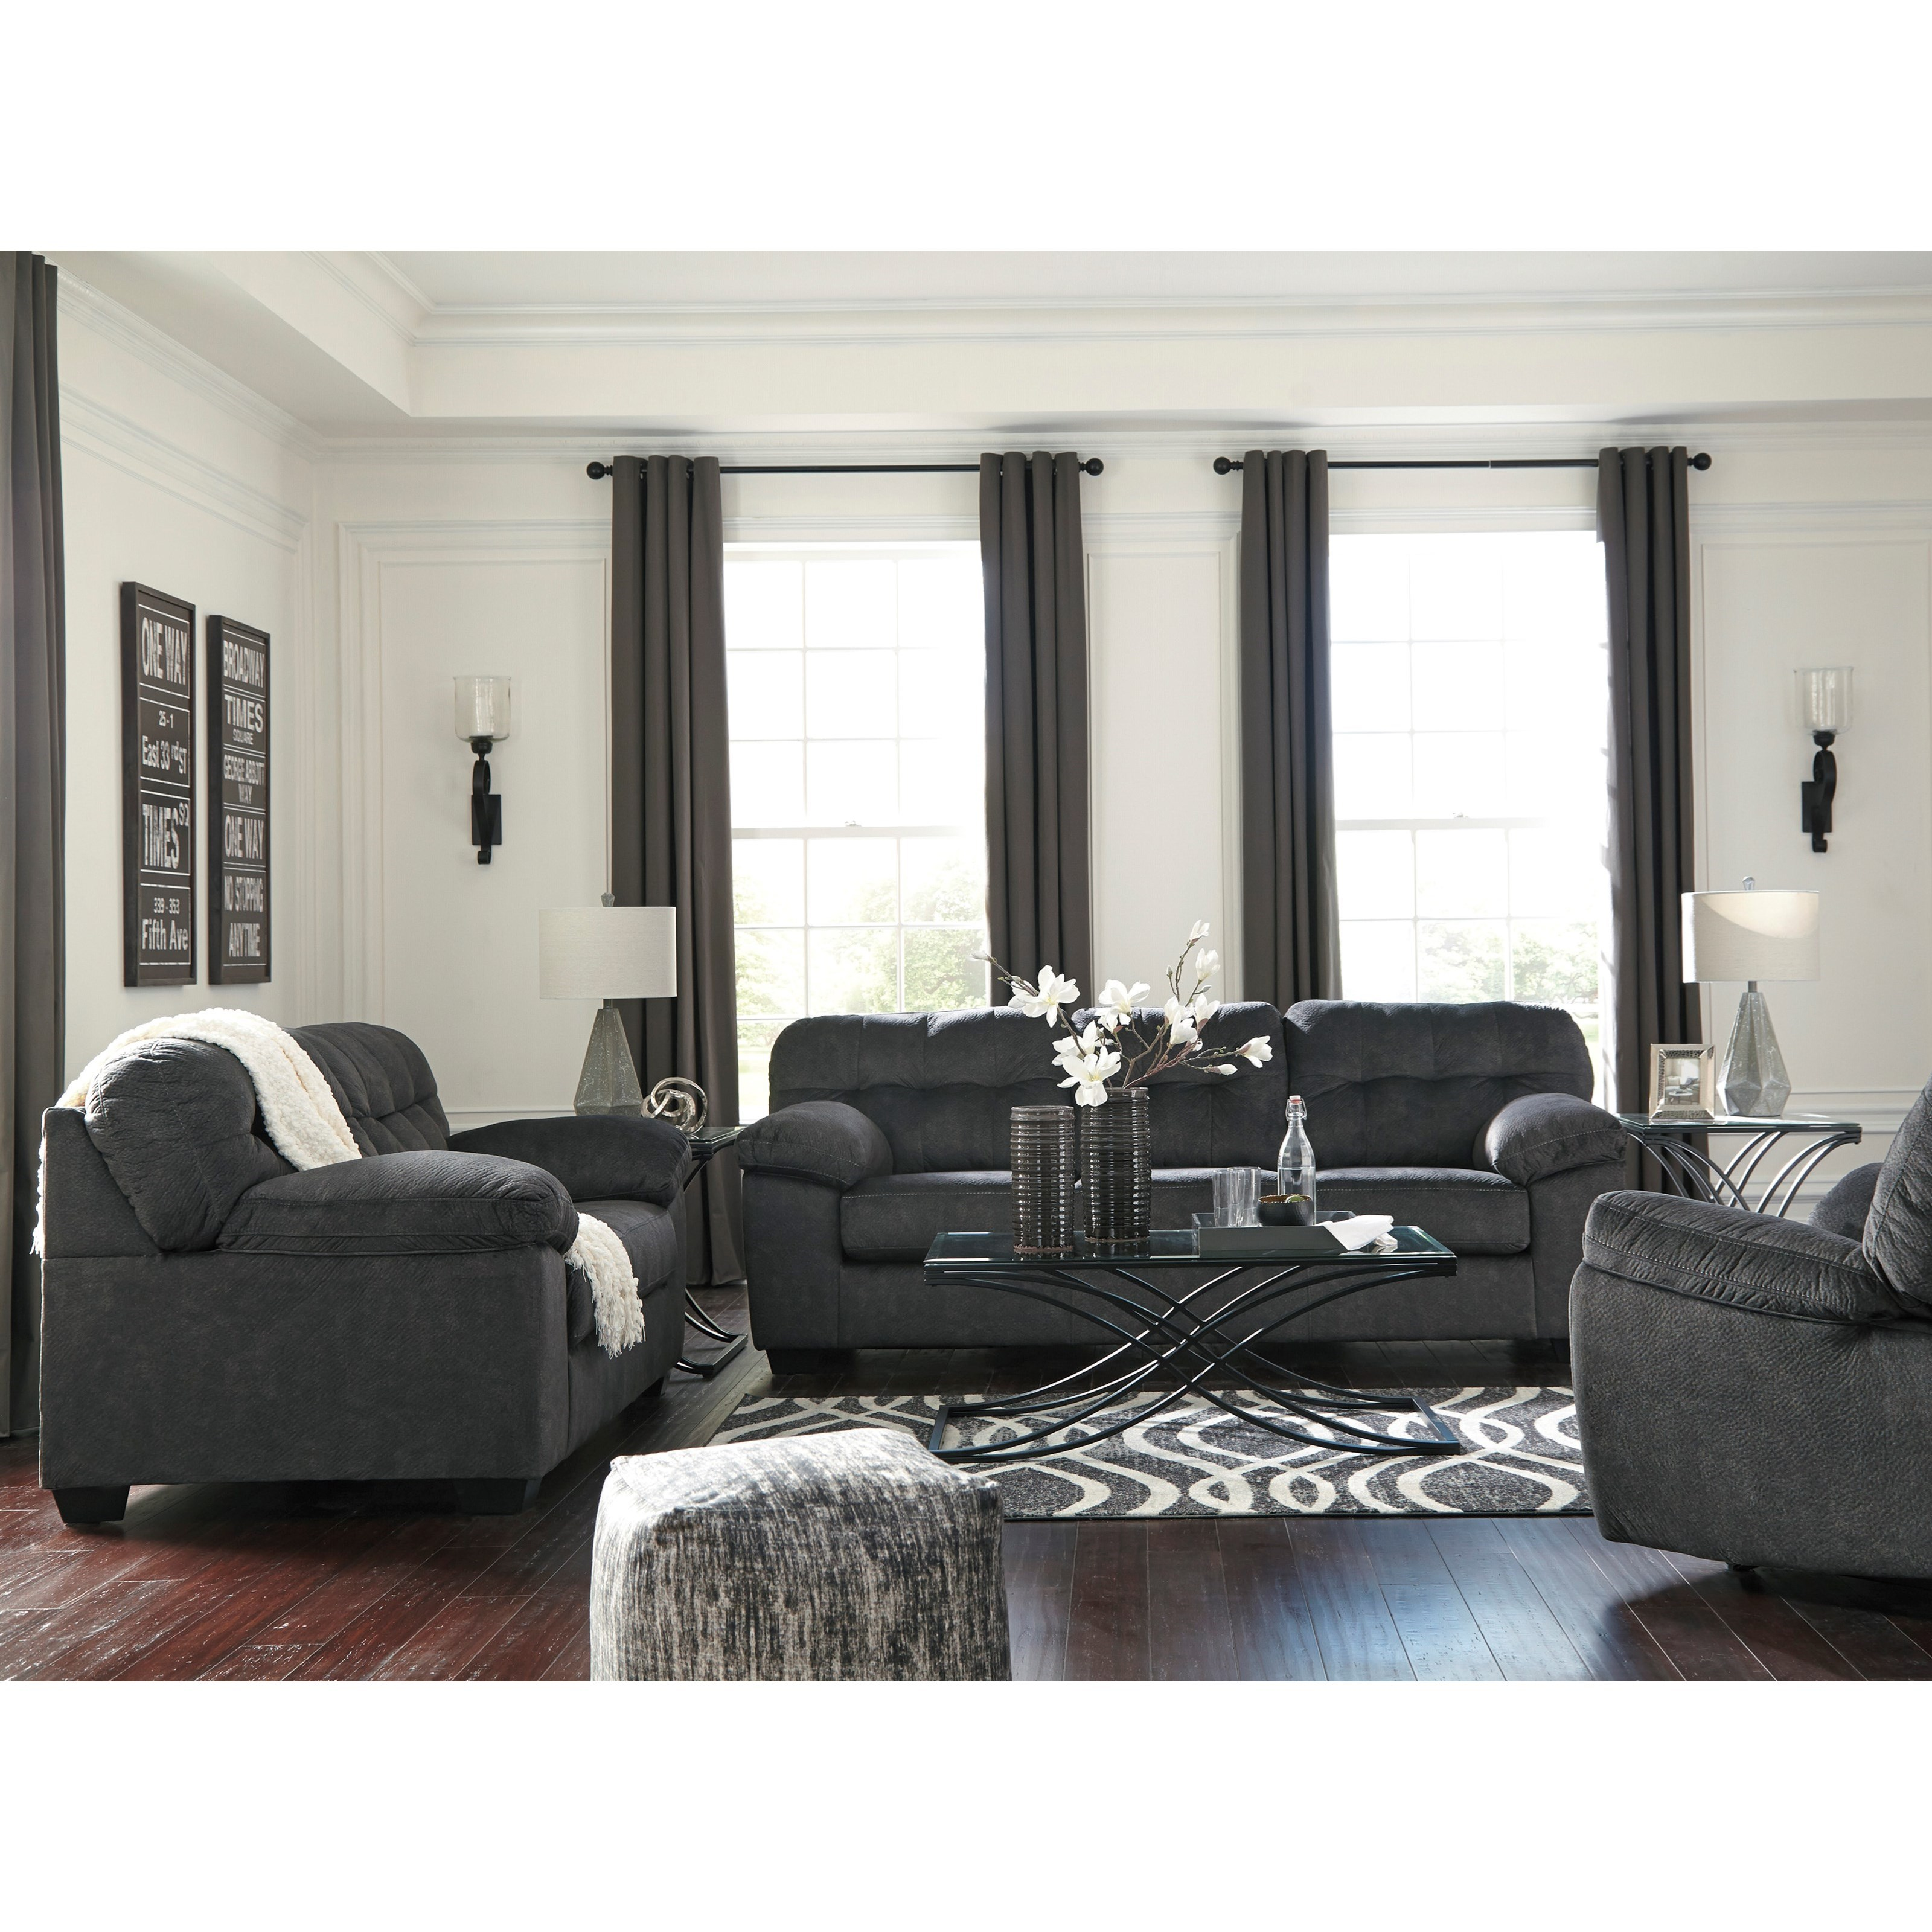 Signature design by ashley accrington stationary living for Living room furniture groups